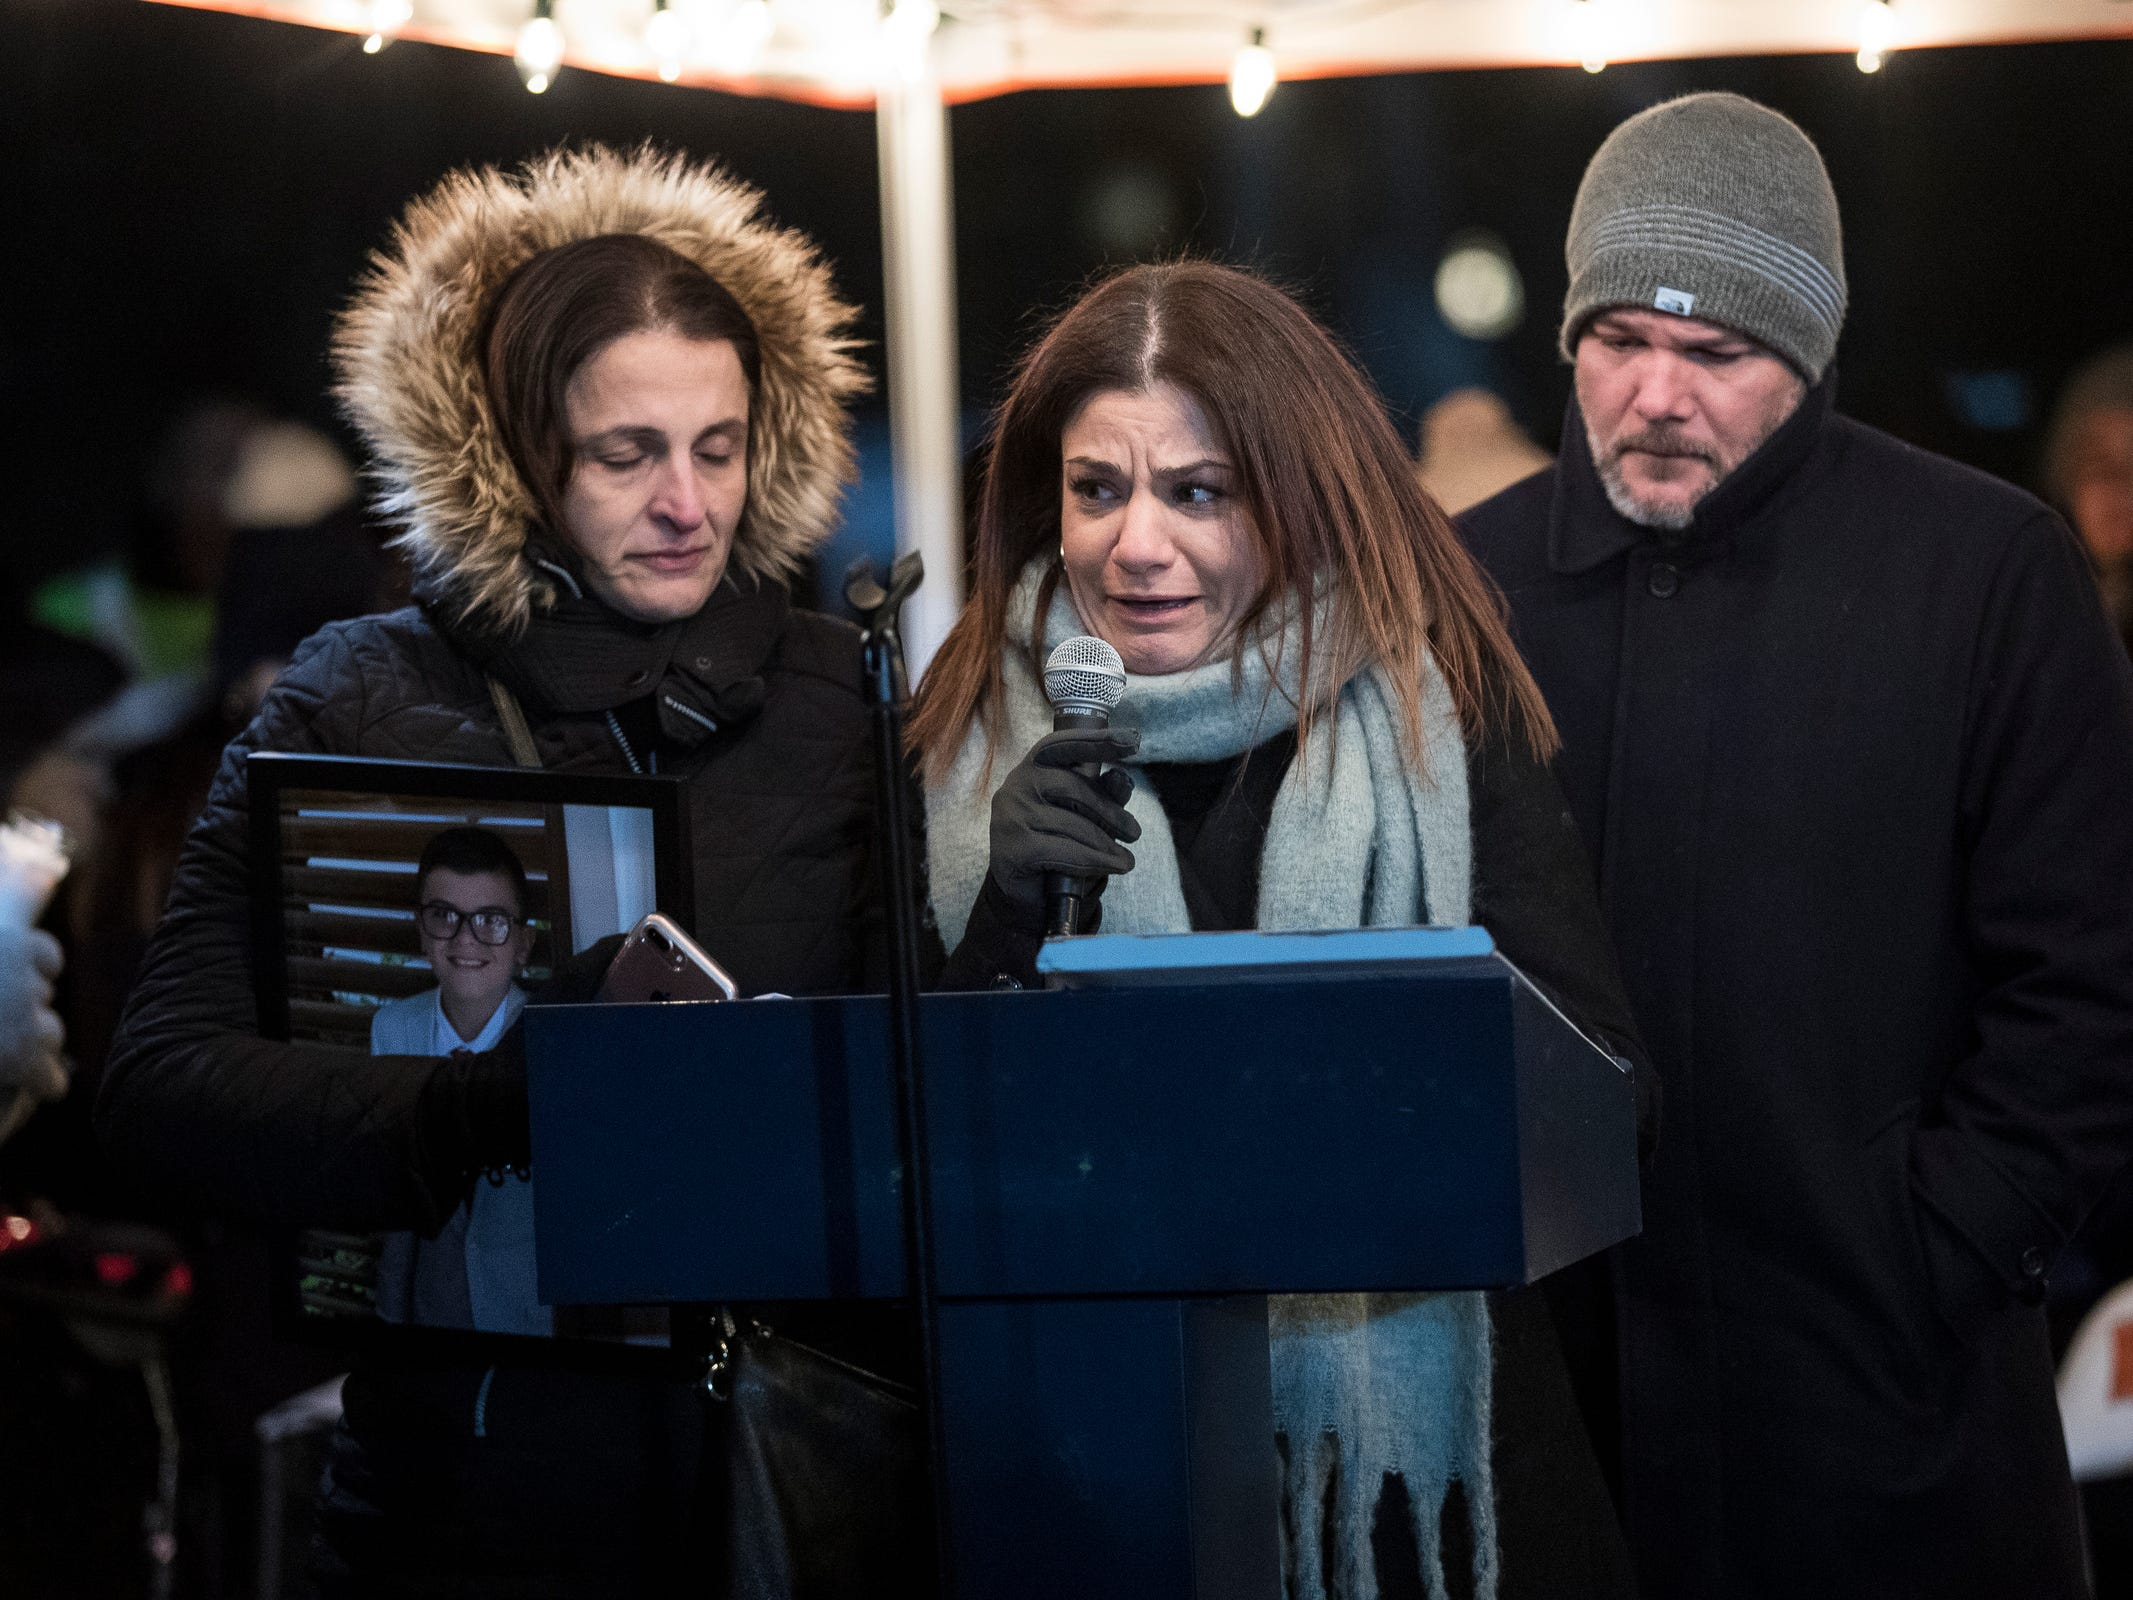 Rima Abbas' sister Rana Abbas Taylor, center, speaks during a candlelight vigil for the Abbas family at the Ford Field Park in Northville Friday, Jan. 11, 2019.